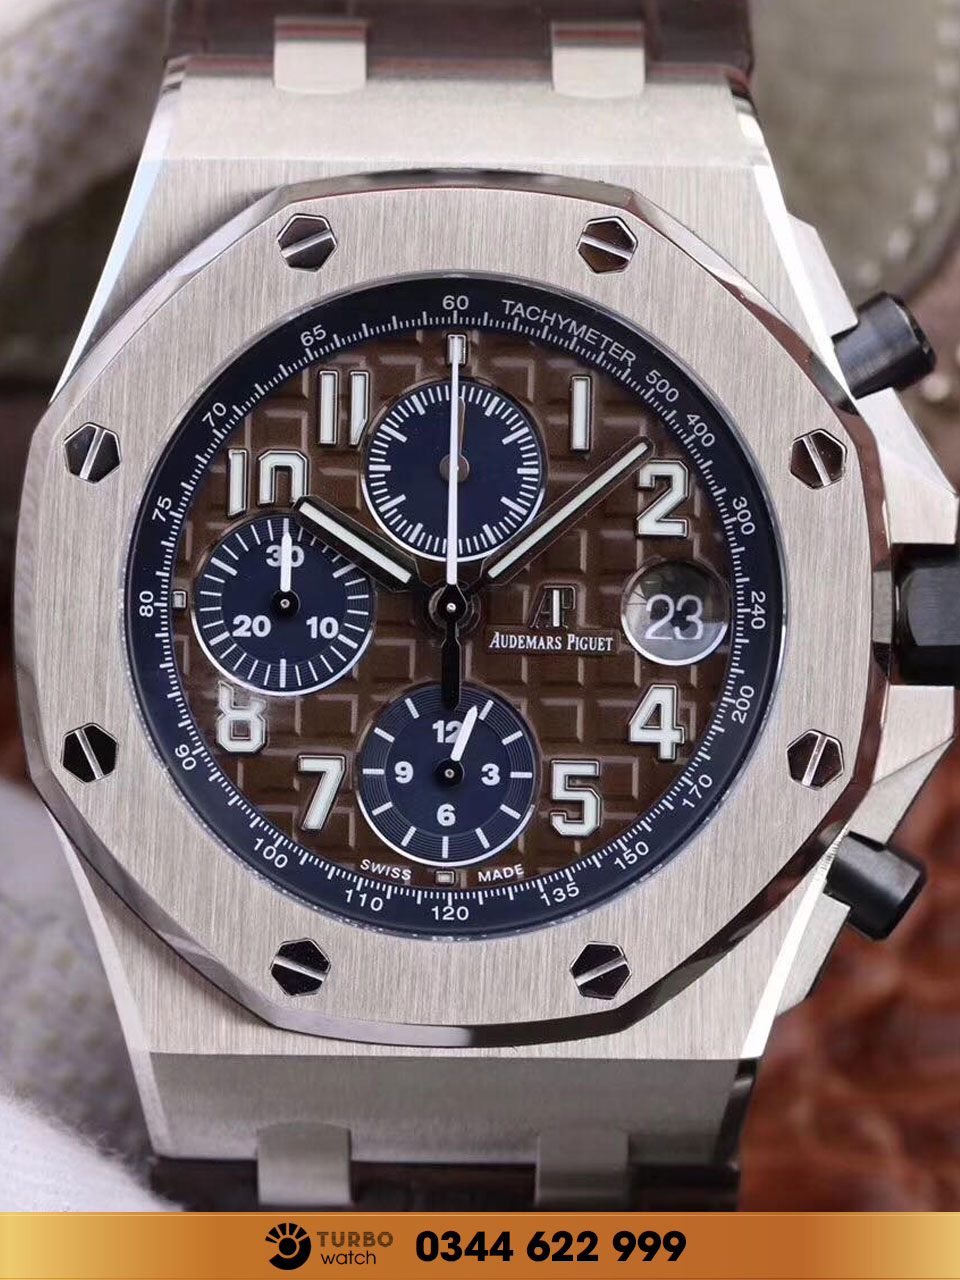 Audemas piguet   Oak Offshore Chronograp brown fake 1-1 cao cấp